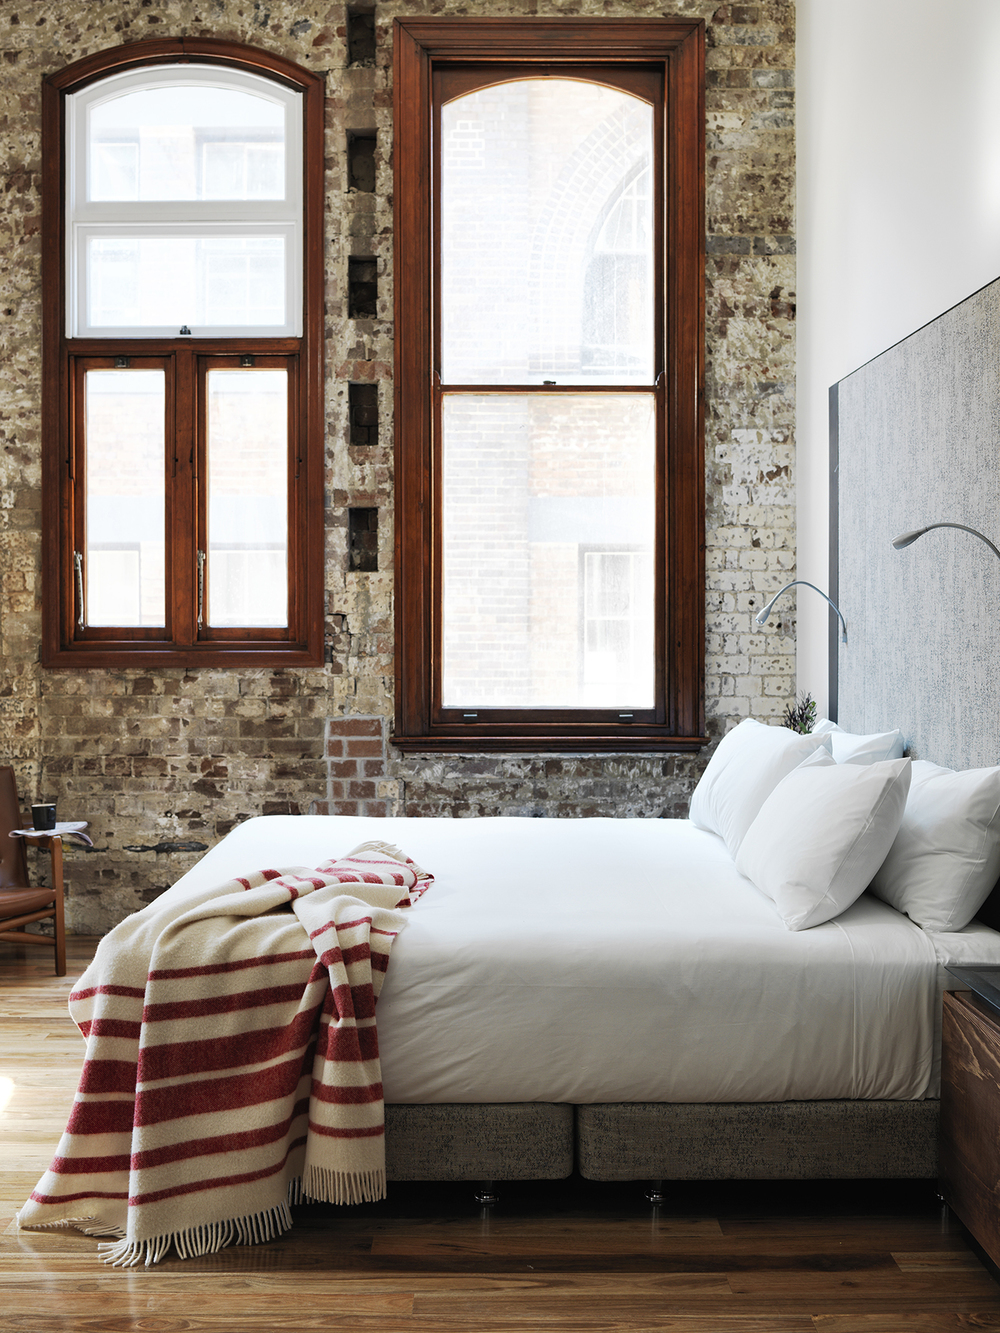 Design hotel find the old clare hotel sydney melting for Design boutique hotel rimini